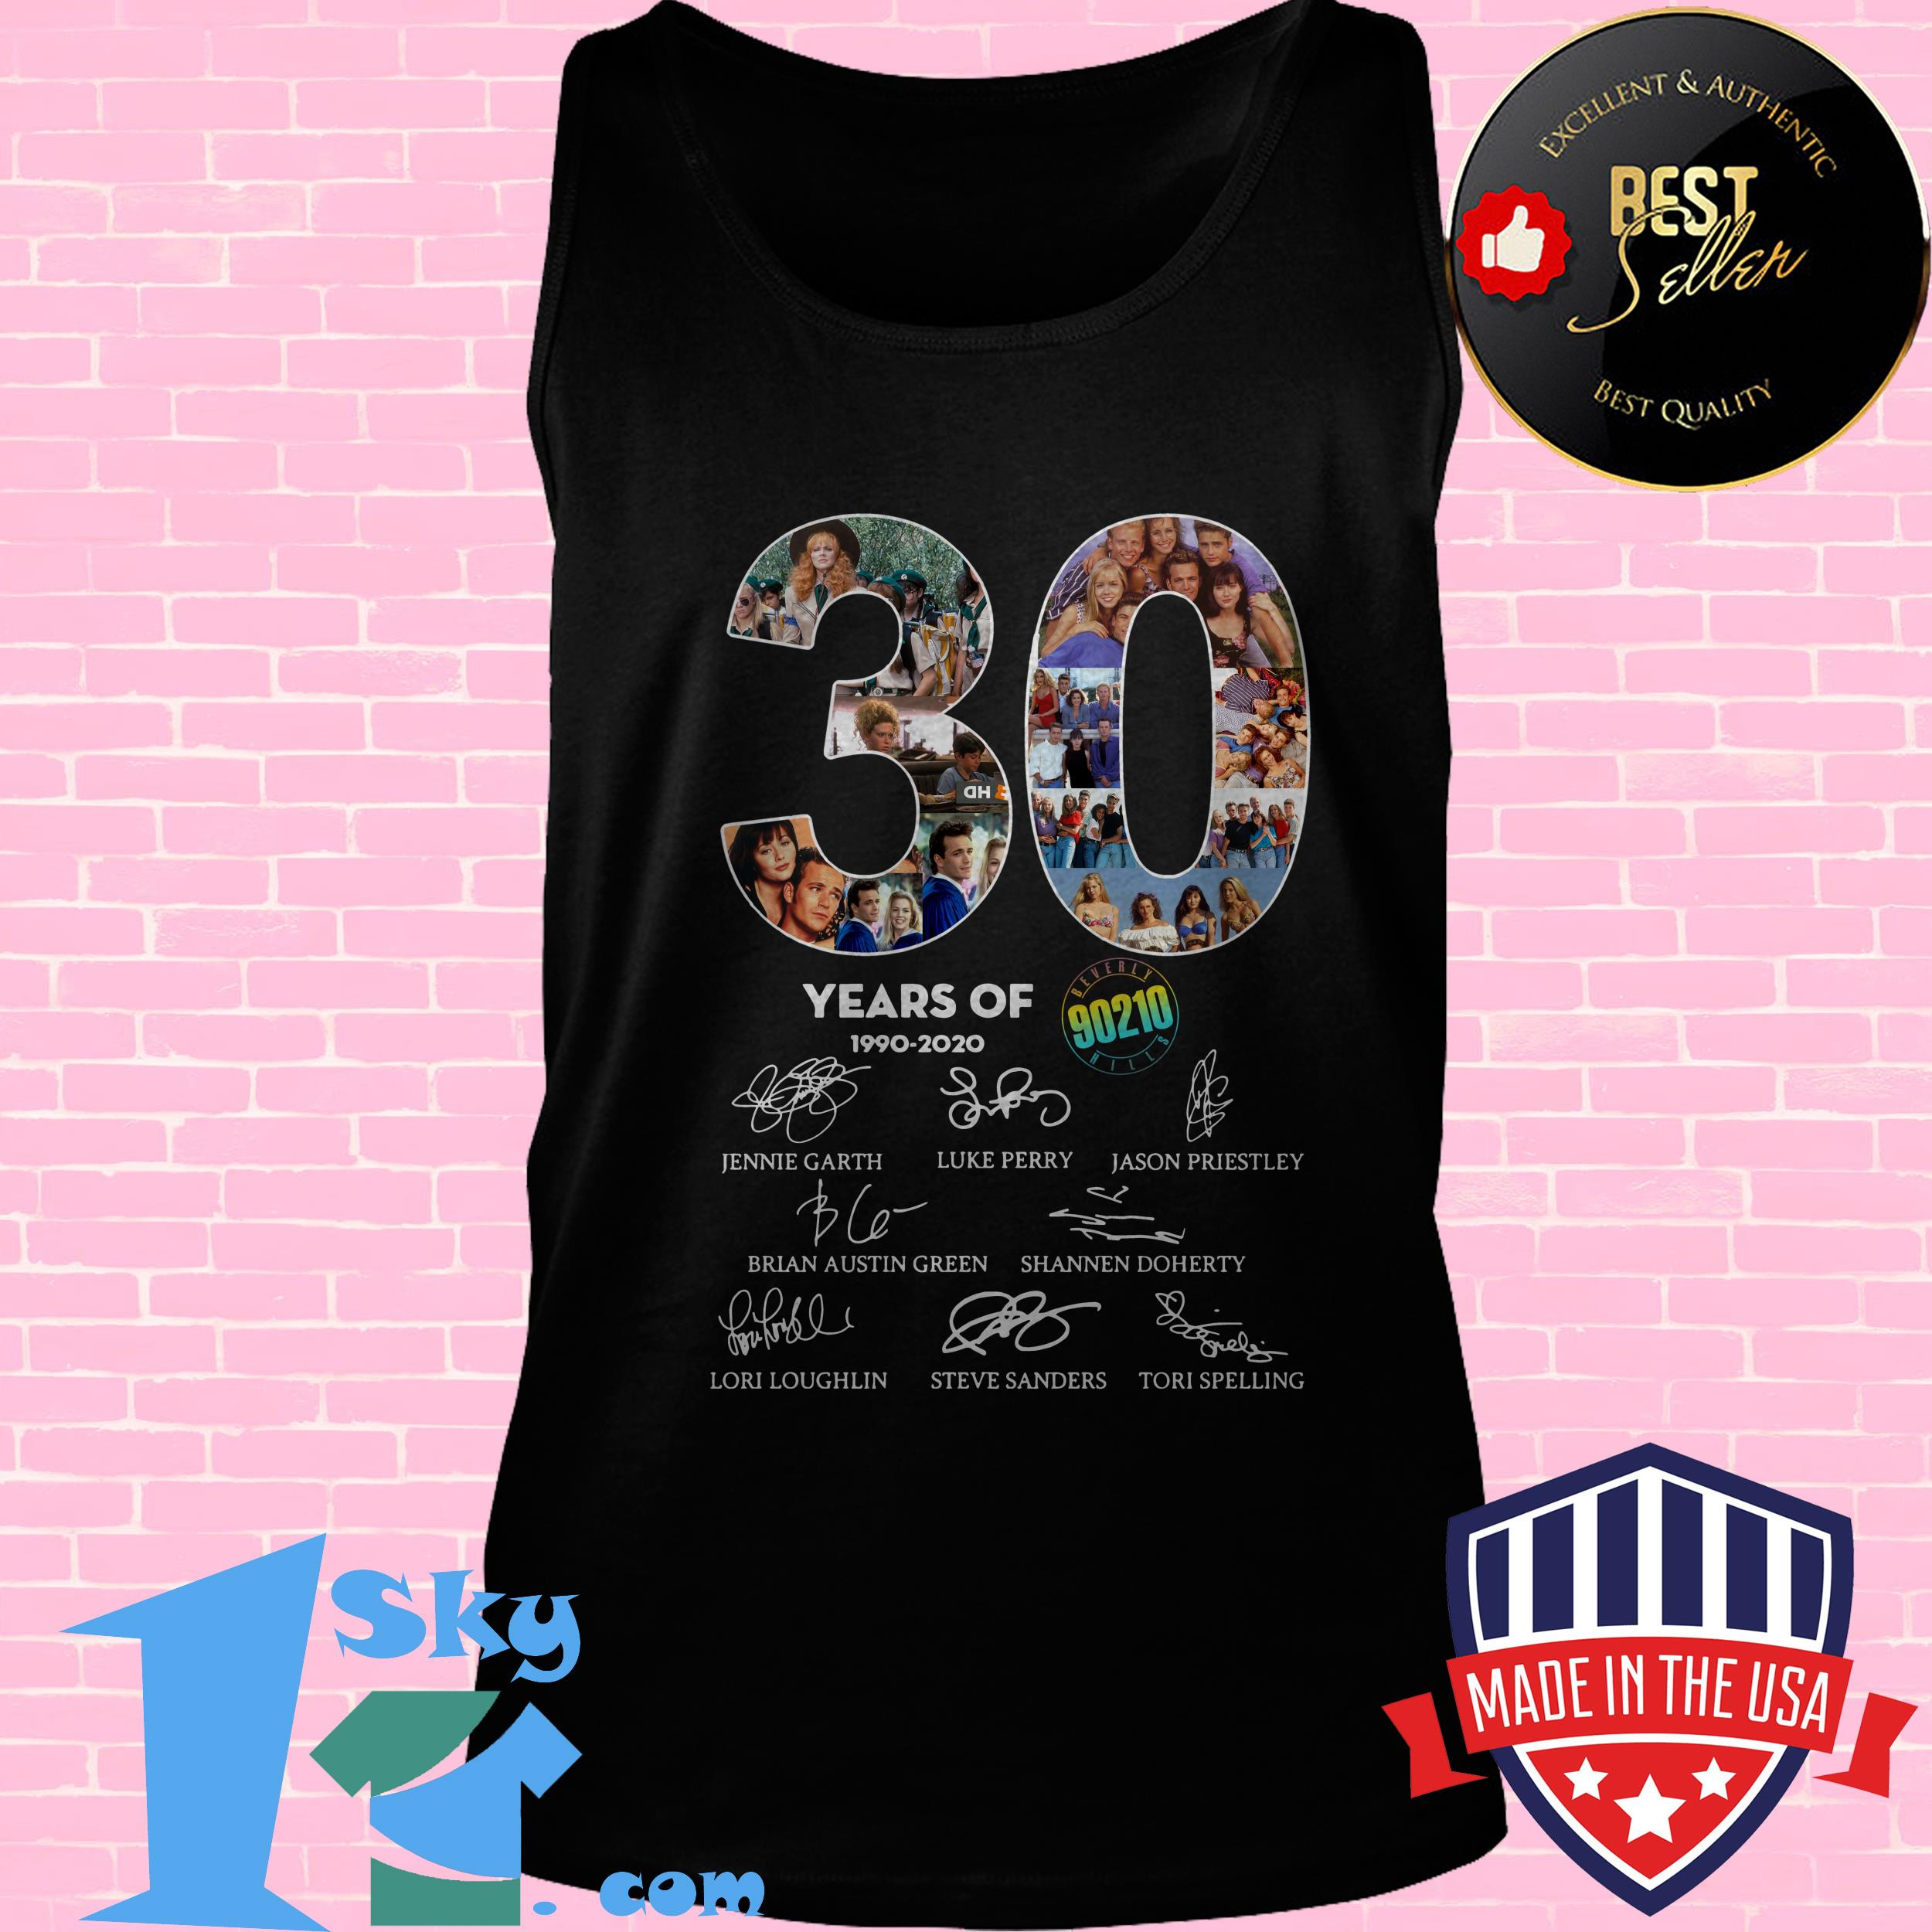 30 years of beverly hills 90210 1990 2020 signature tank top - 30 Years of Beverly Hills 90210 1990 2020 Signature shirt